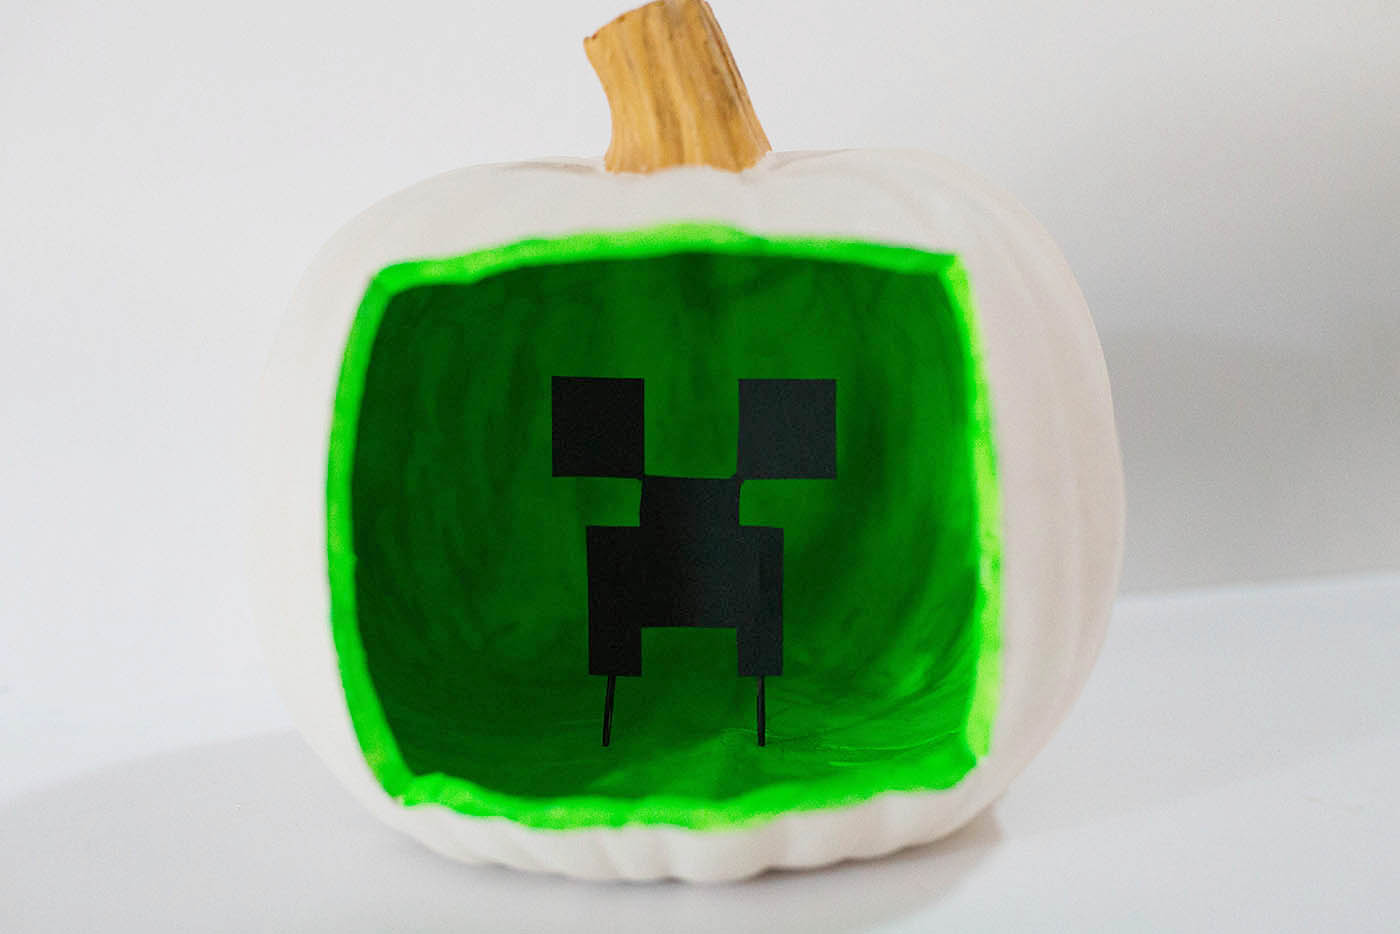 aftb-minecraft-creeper-pumpkin-9